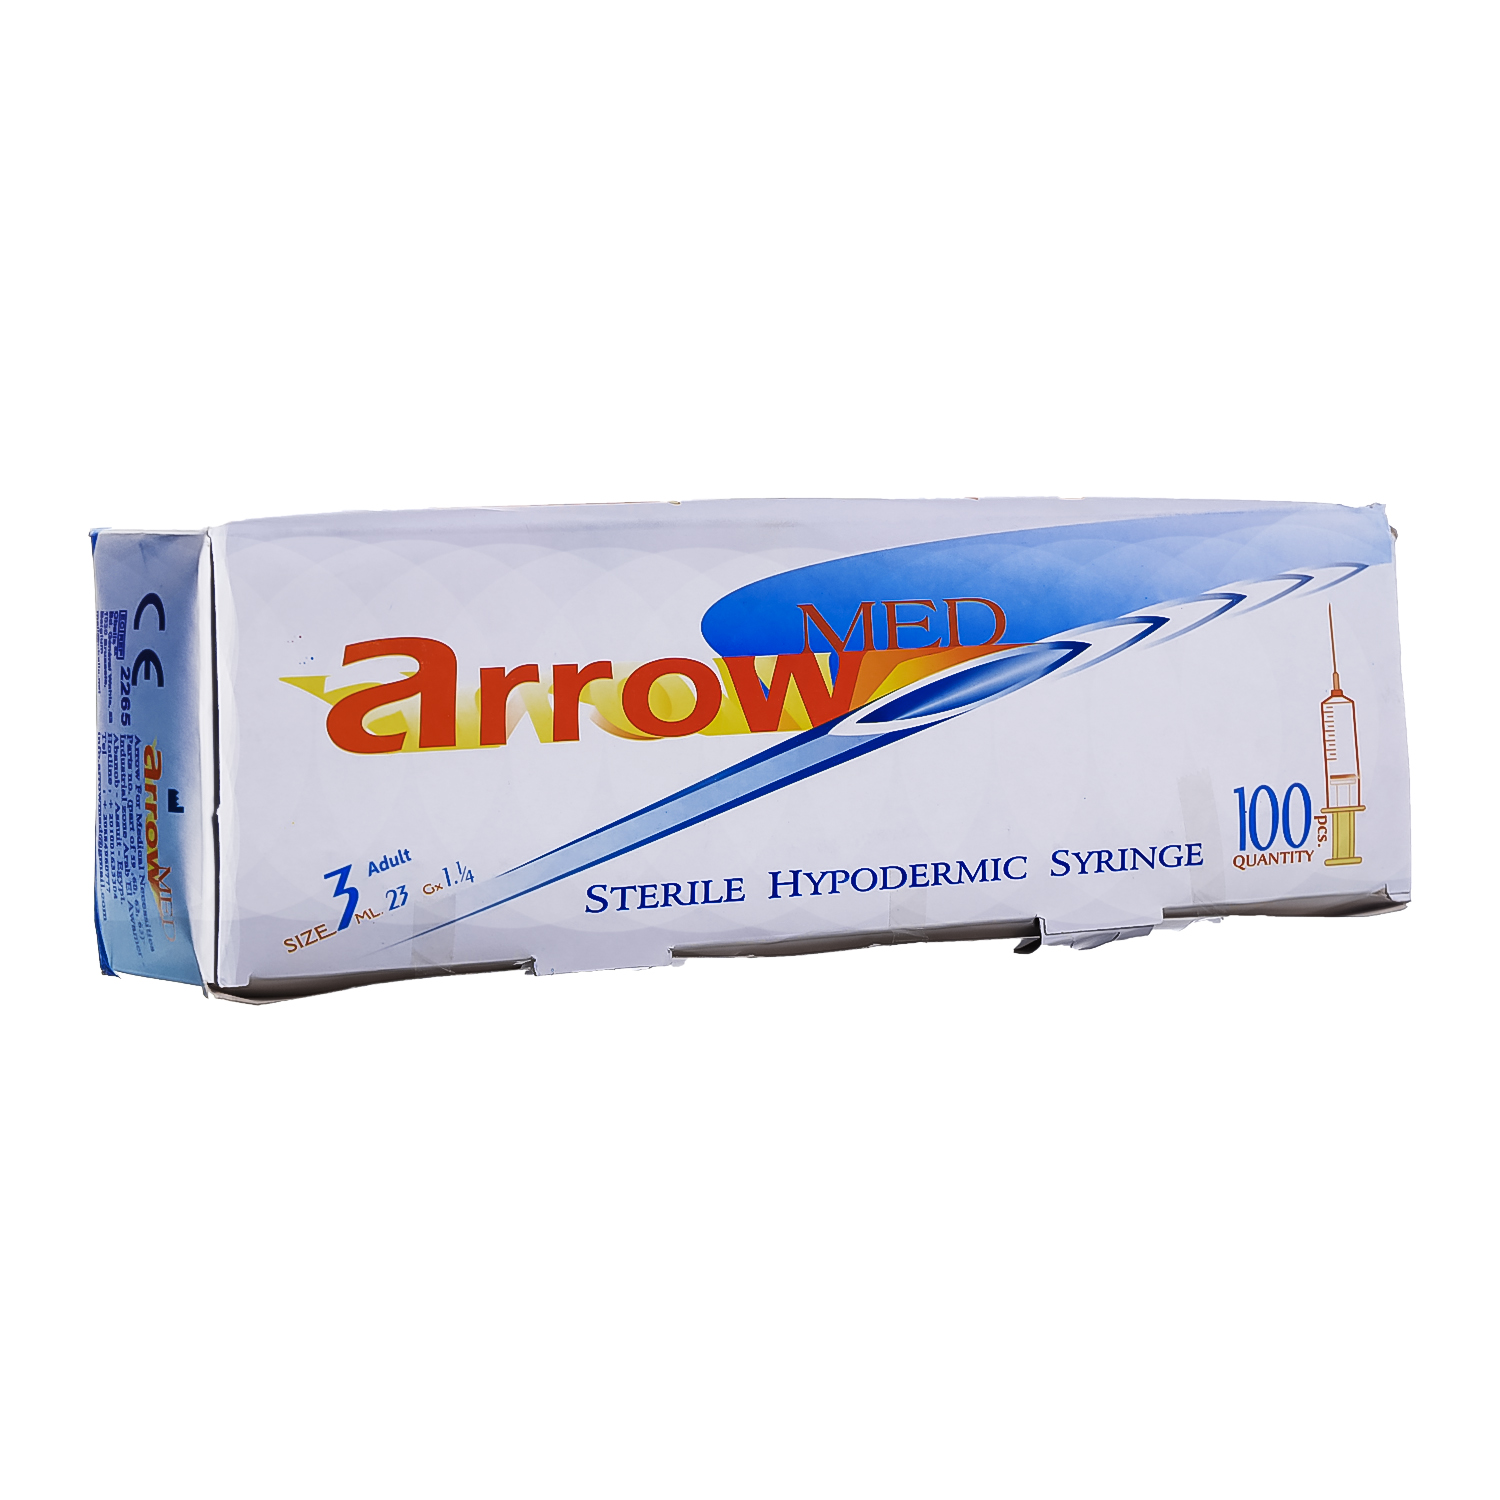 Arrow syringe 3 ml adult